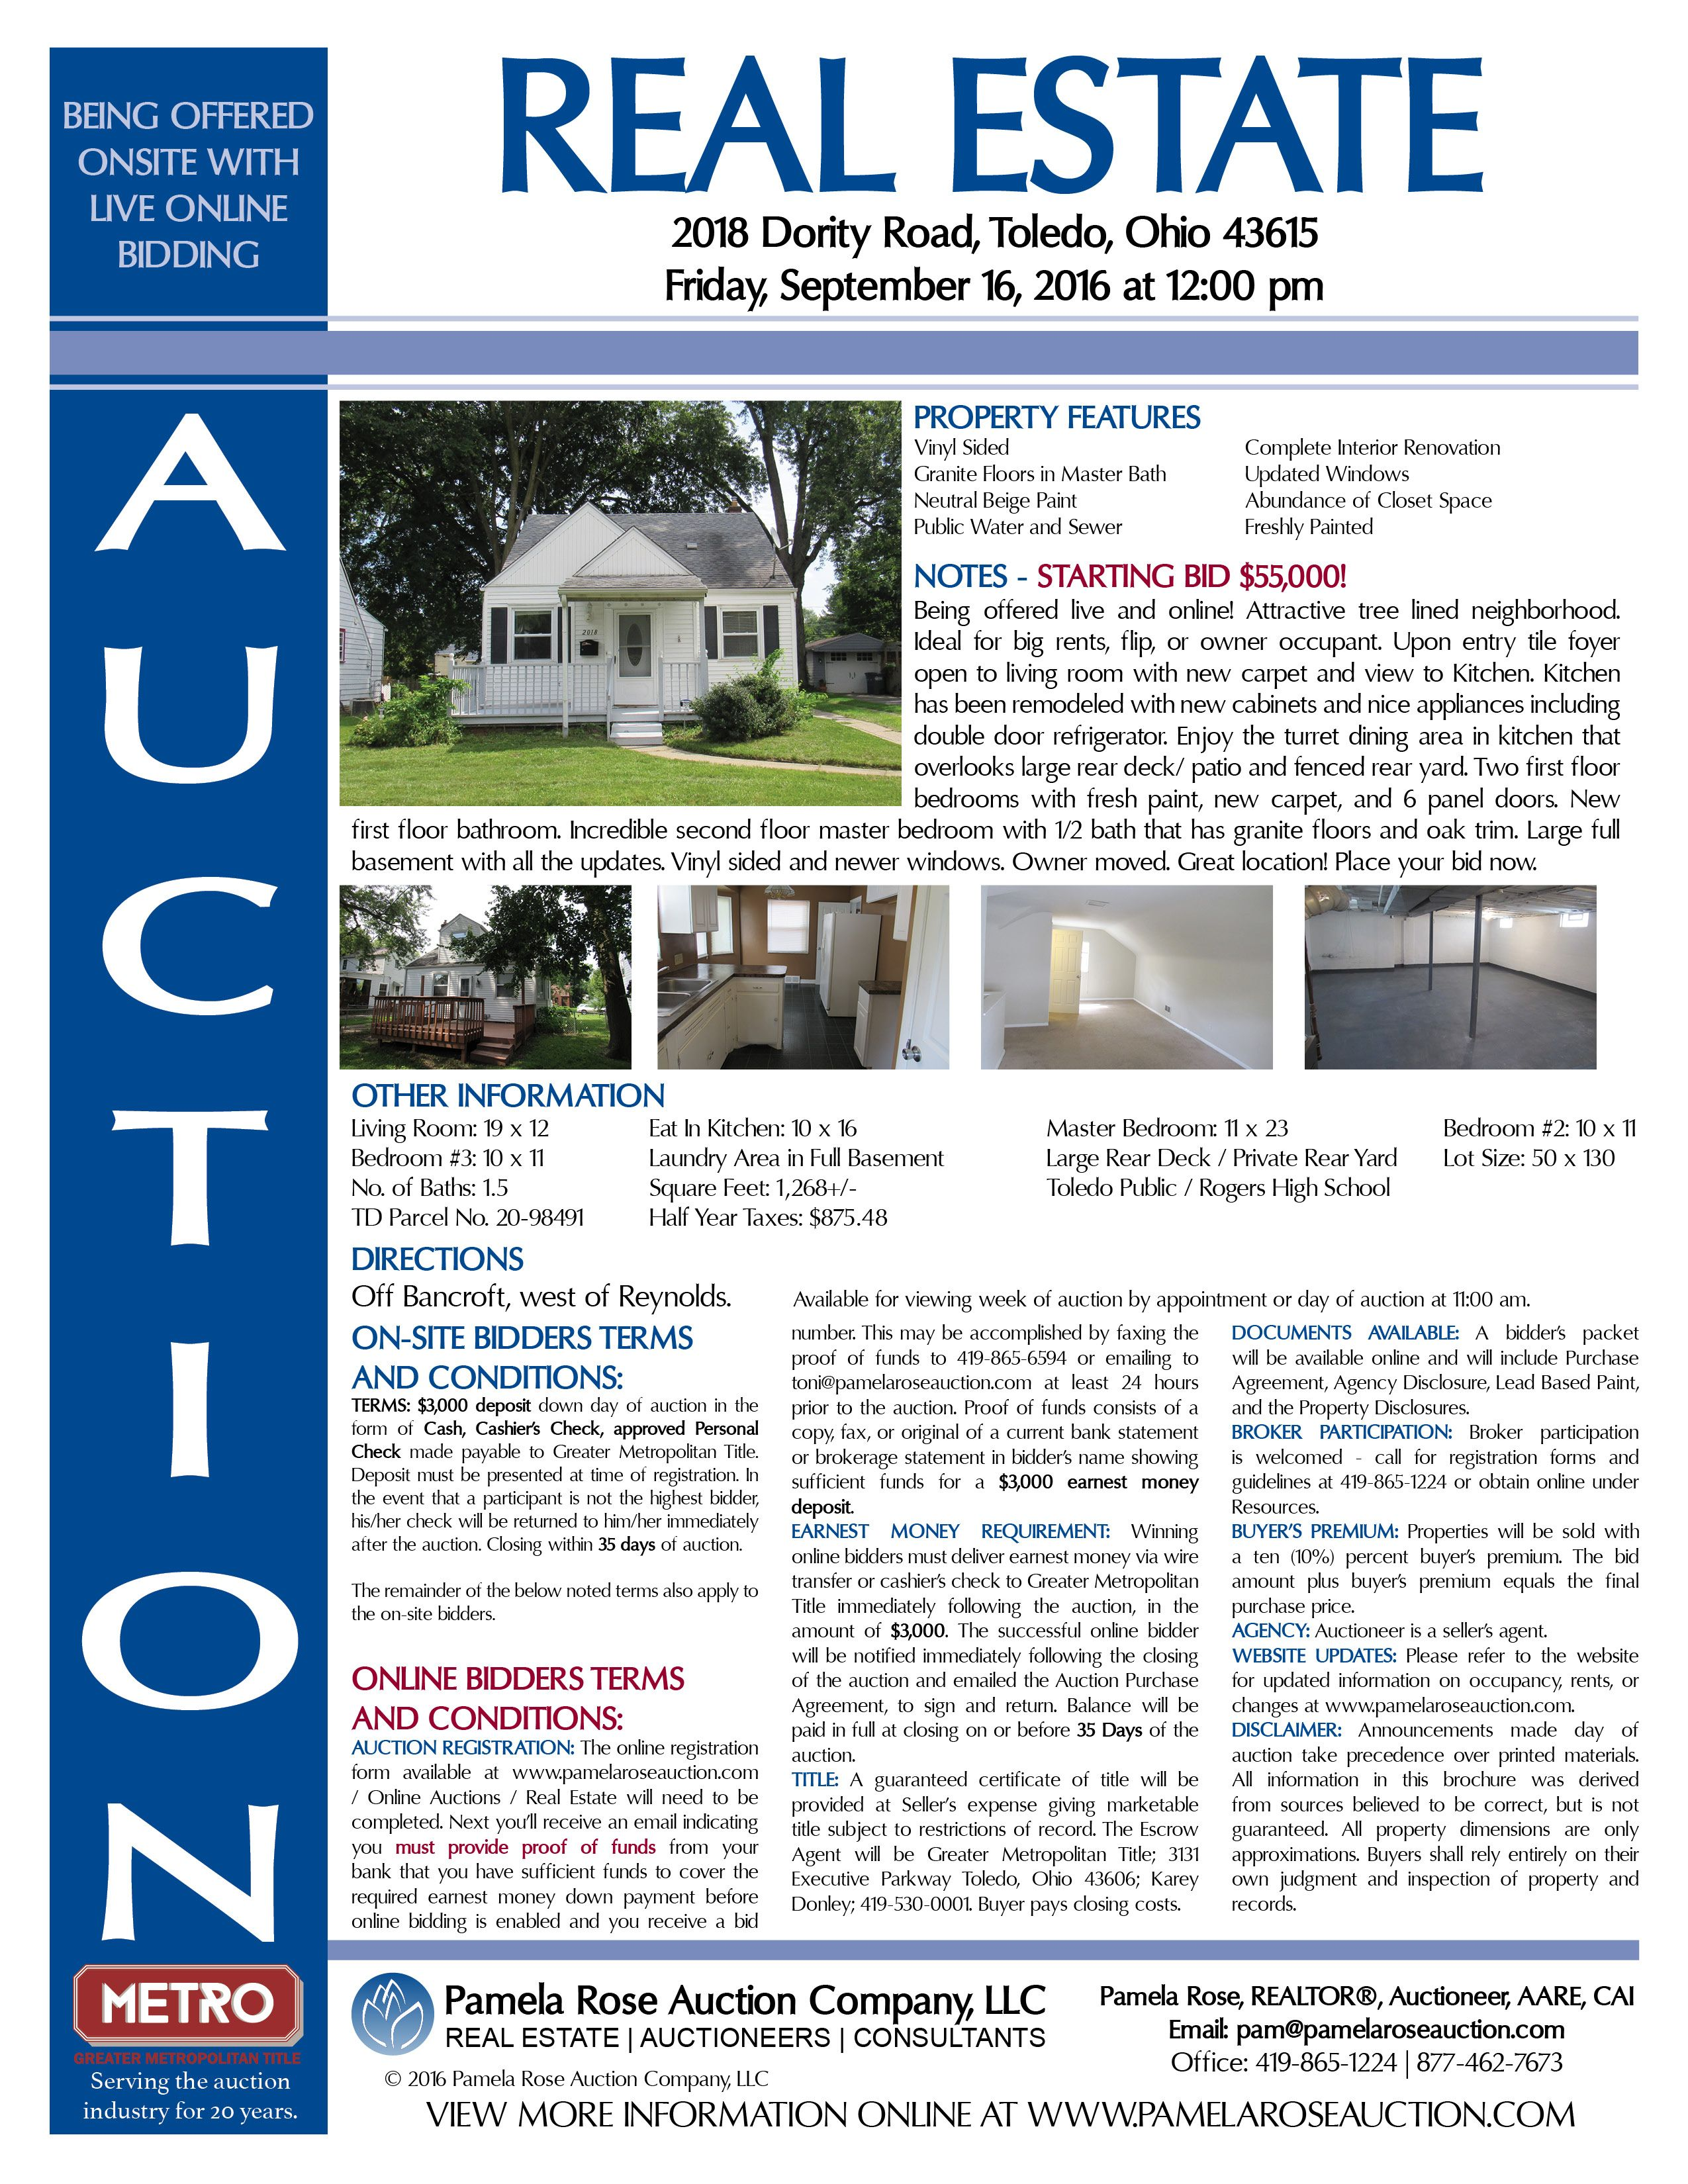 Live and Online Real Estate Auction – Starting Bid $55,000